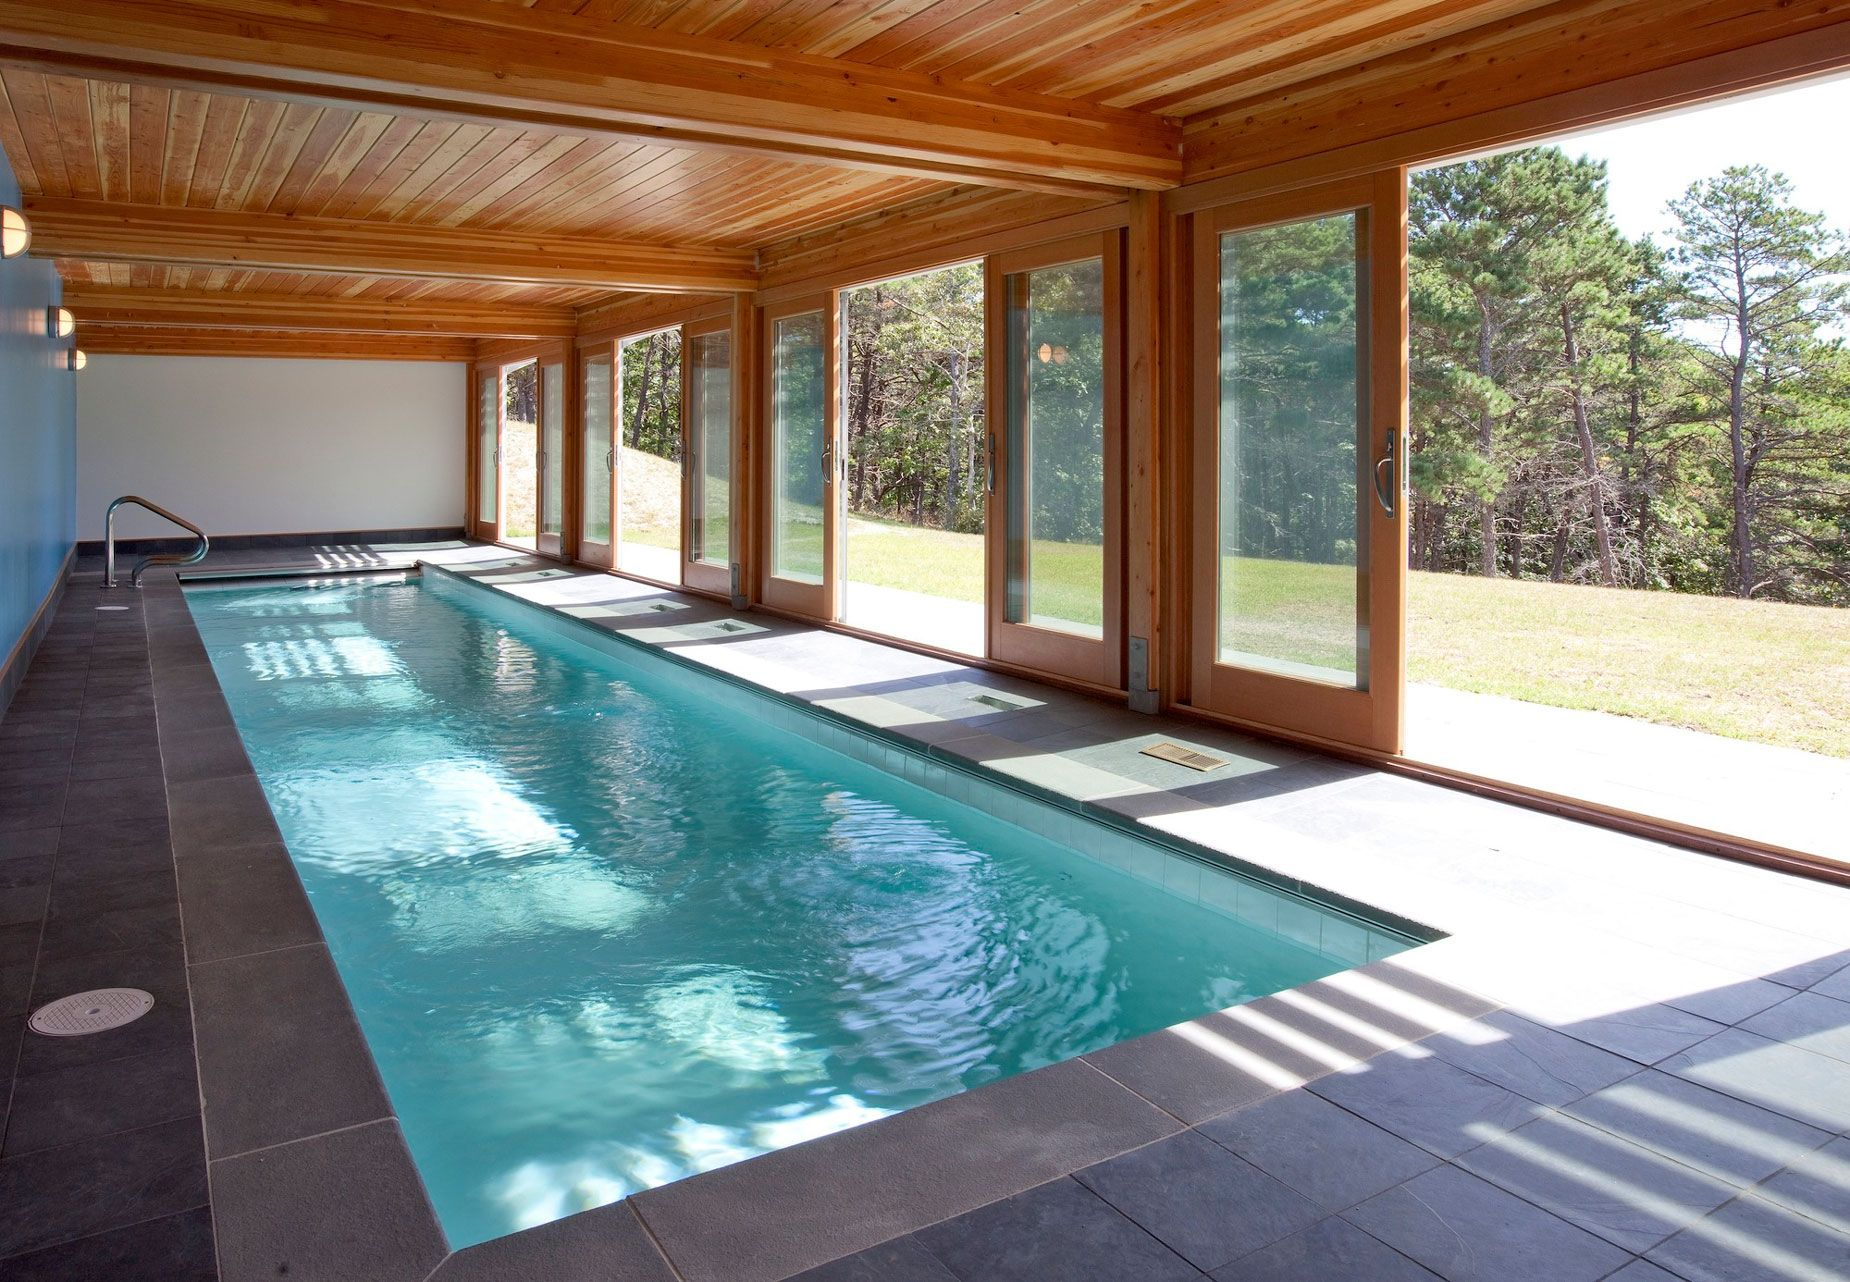 10 of the most amazing indoor swimming pools